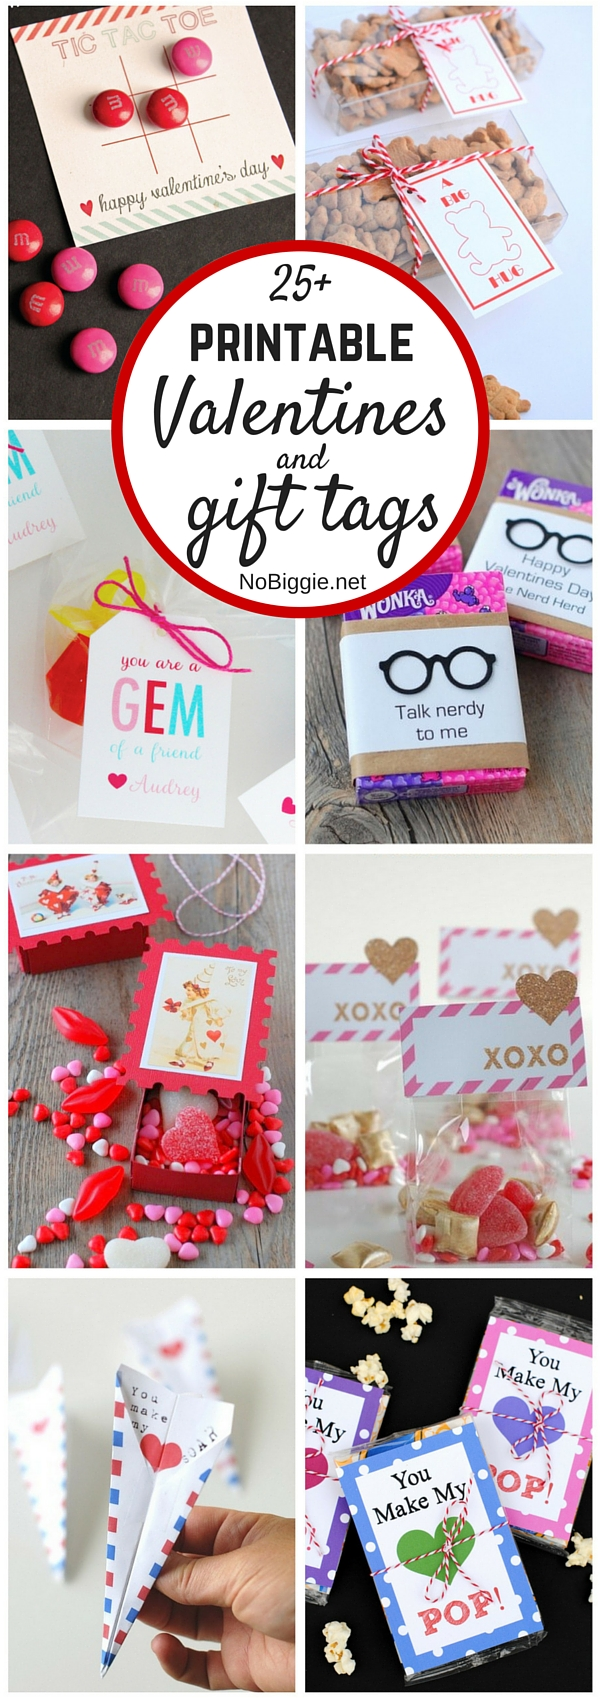 25+ printable Valentines and gift tags | NoBiggie.net